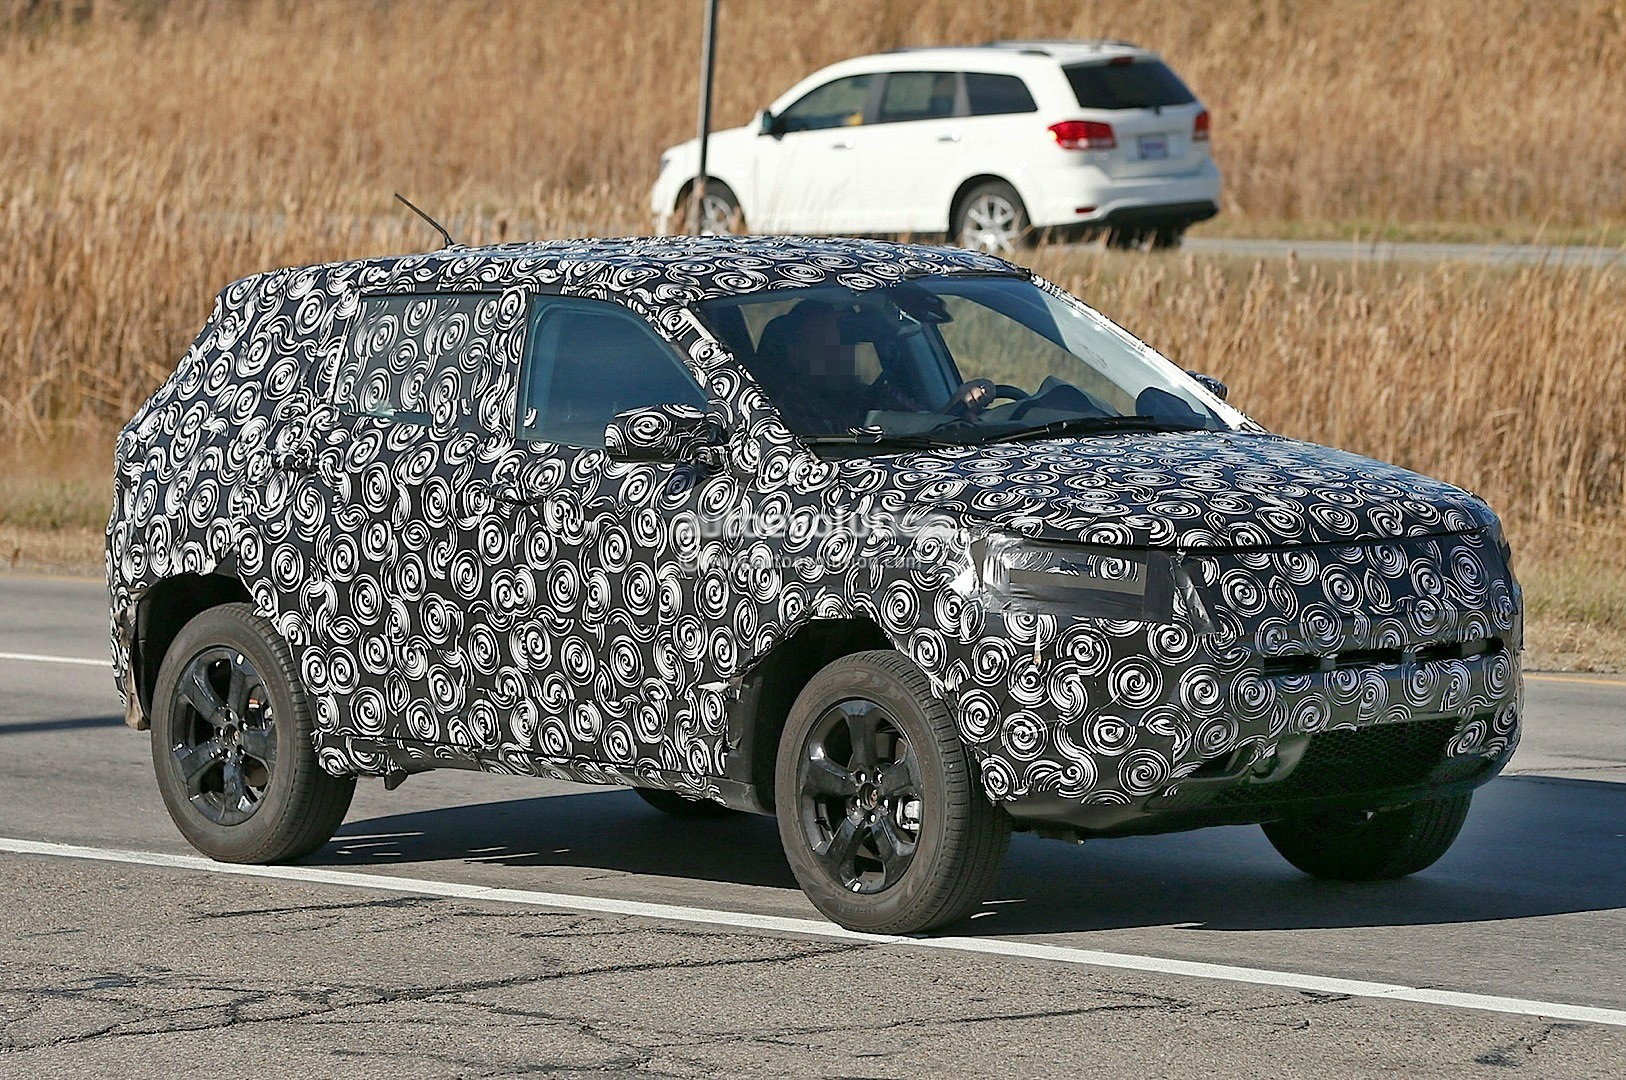 Cuv Car 2017 Jeep Compact Cuv Spied To Replace Both Patriot And Compass